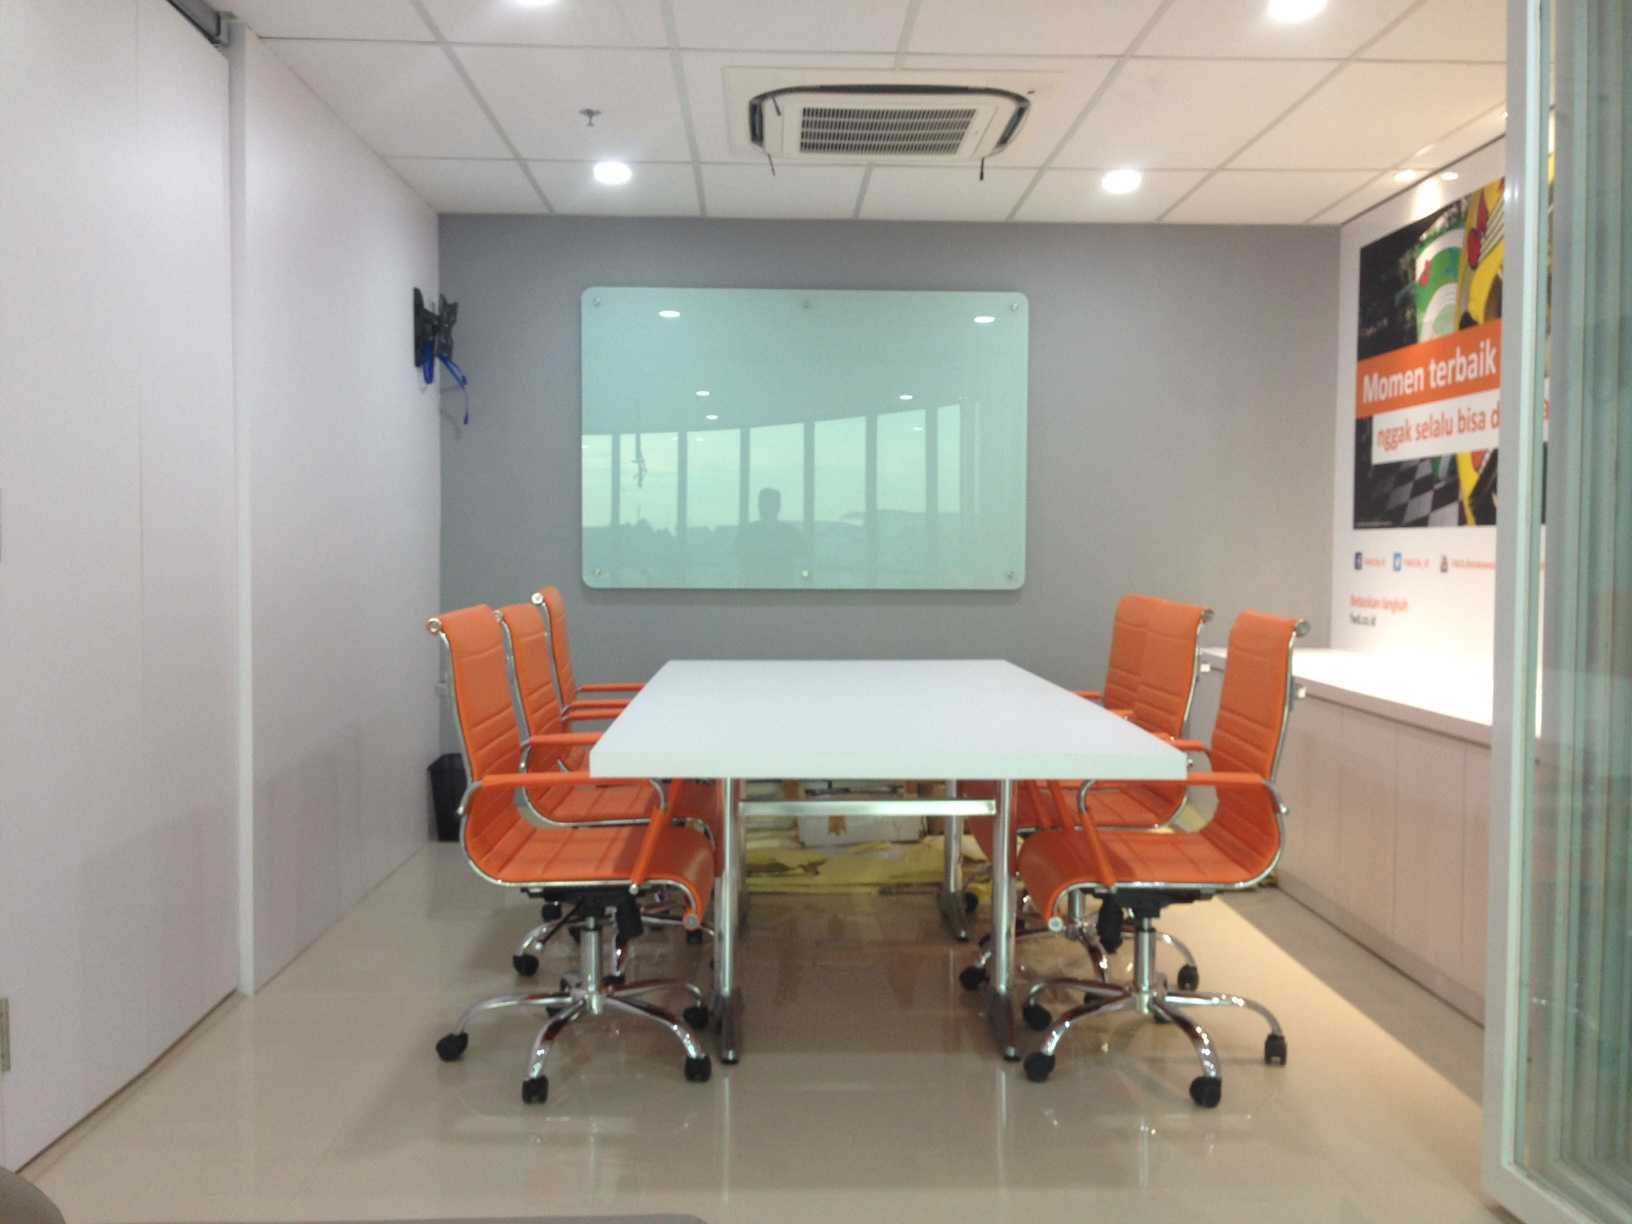 Roemah Cantik Marketing Office Palembang, Kota Palembang, Sumatera Selatan, Indonesia Palembang, Kota Palembang, Sumatera Selatan, Indonesia Meeting Room   43143